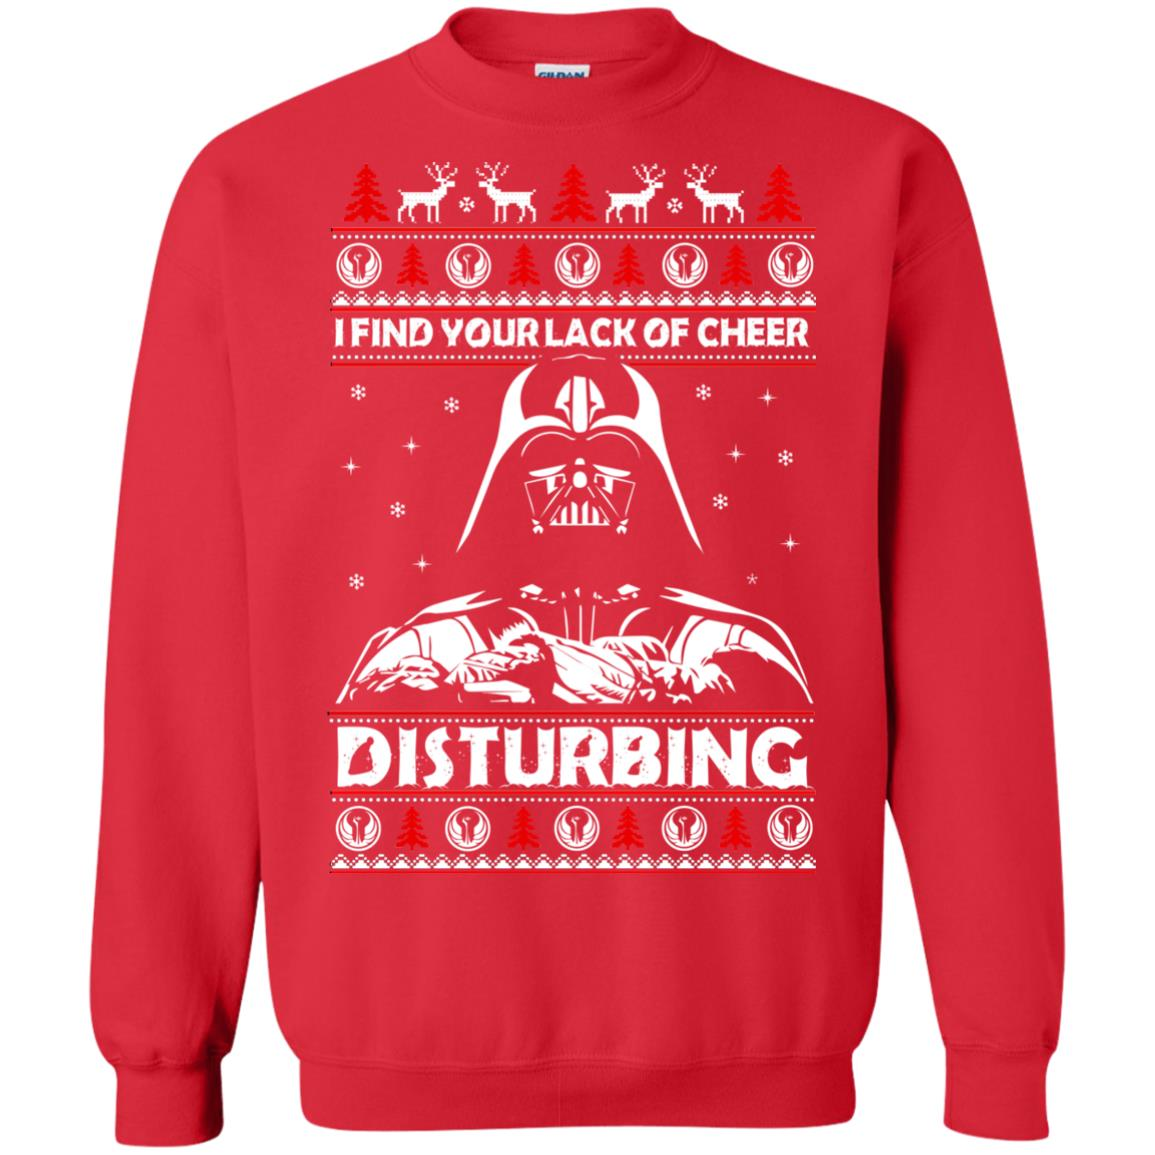 image 1766 - Darth Vader: I Find Your Lack of Cheer Disturbing Sweater, Shirt